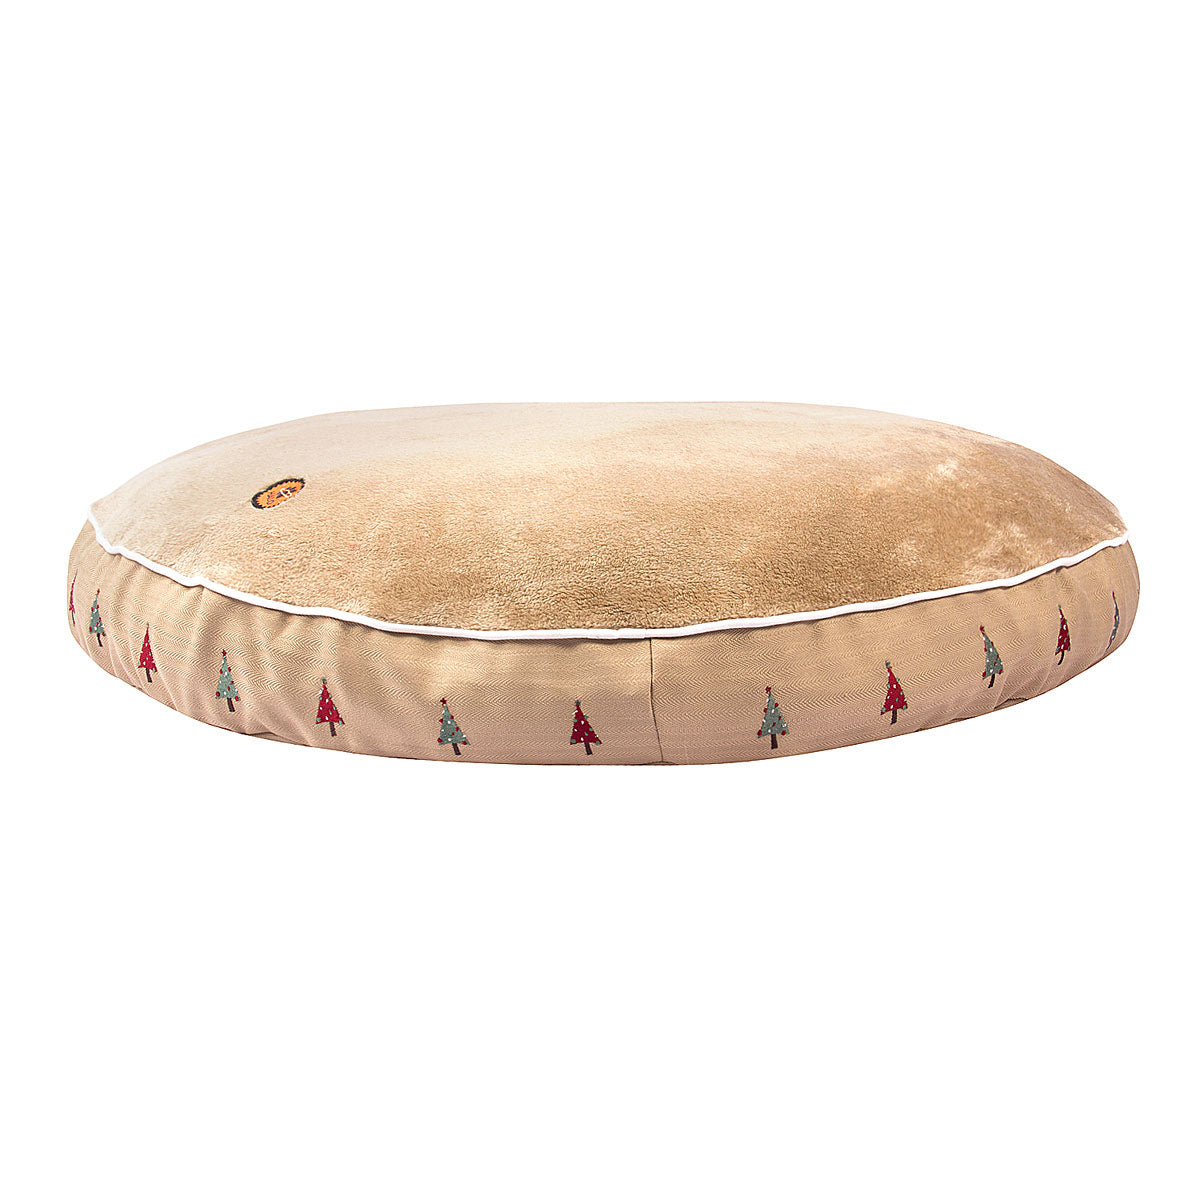 Halo Christmas Tree Round Dog Bed_2174